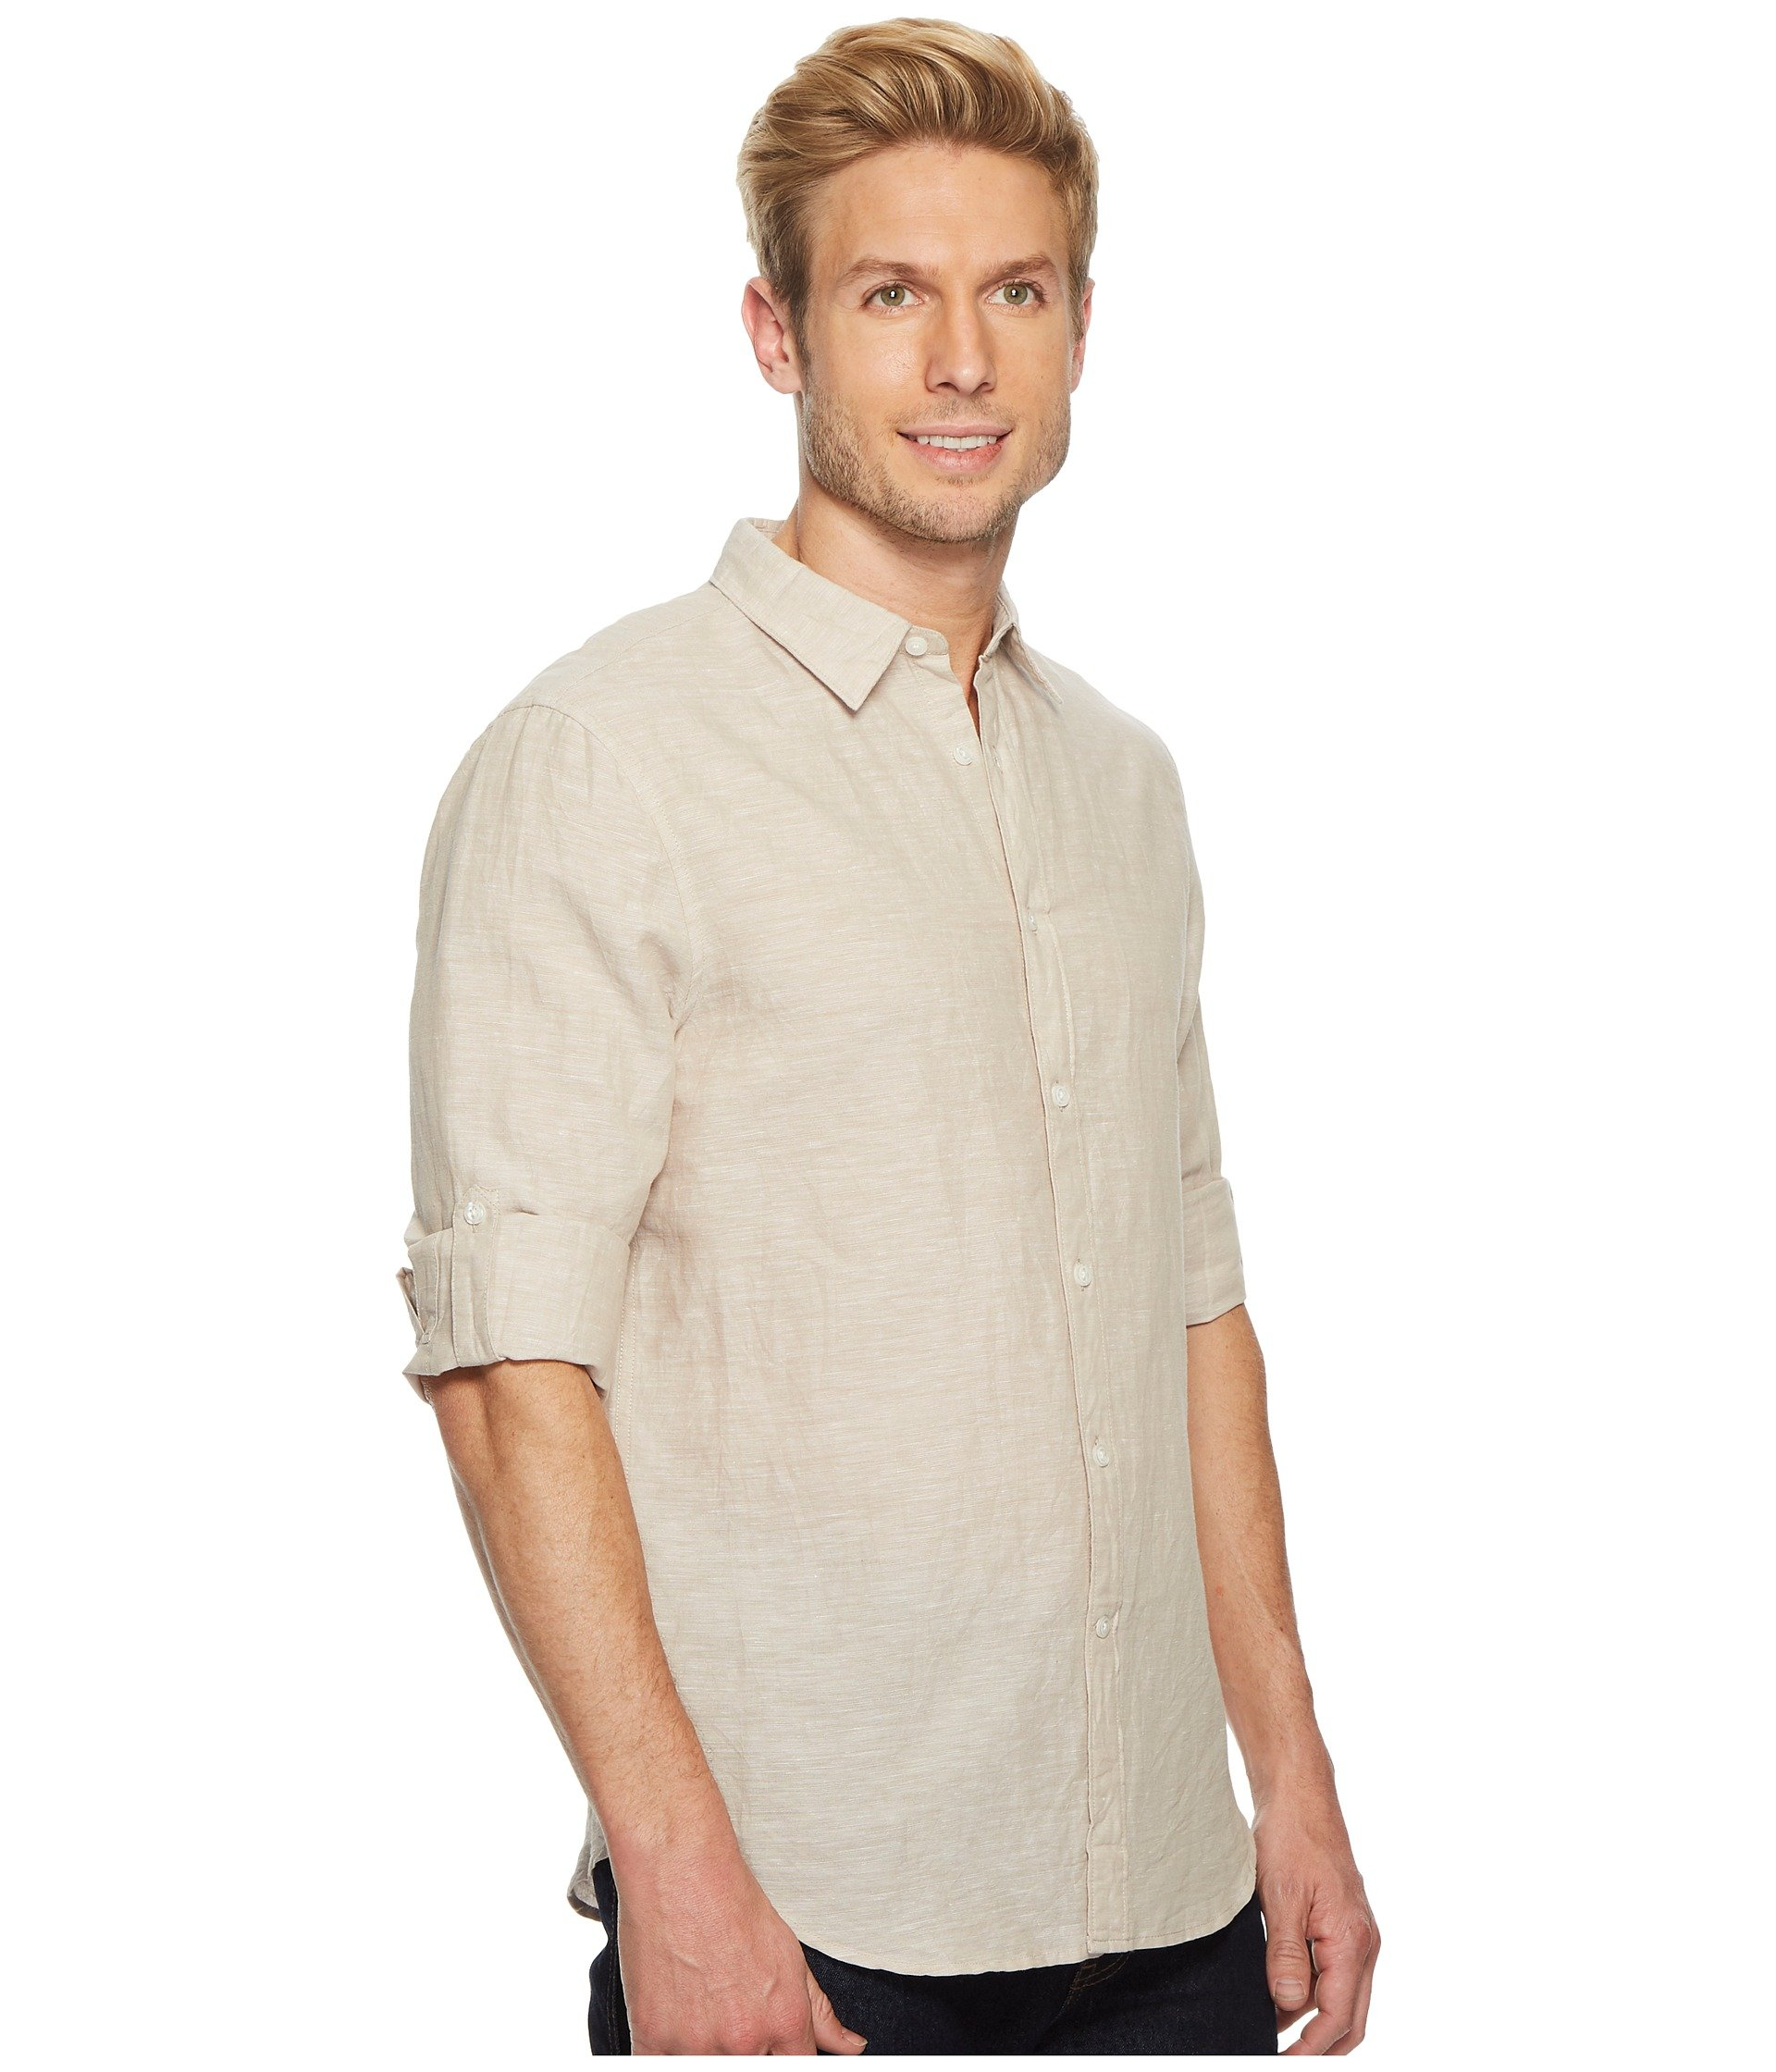 sleeve Solid Linen Rolled Shirt Natural Ellis Cotton Perry xanqAPSgTa